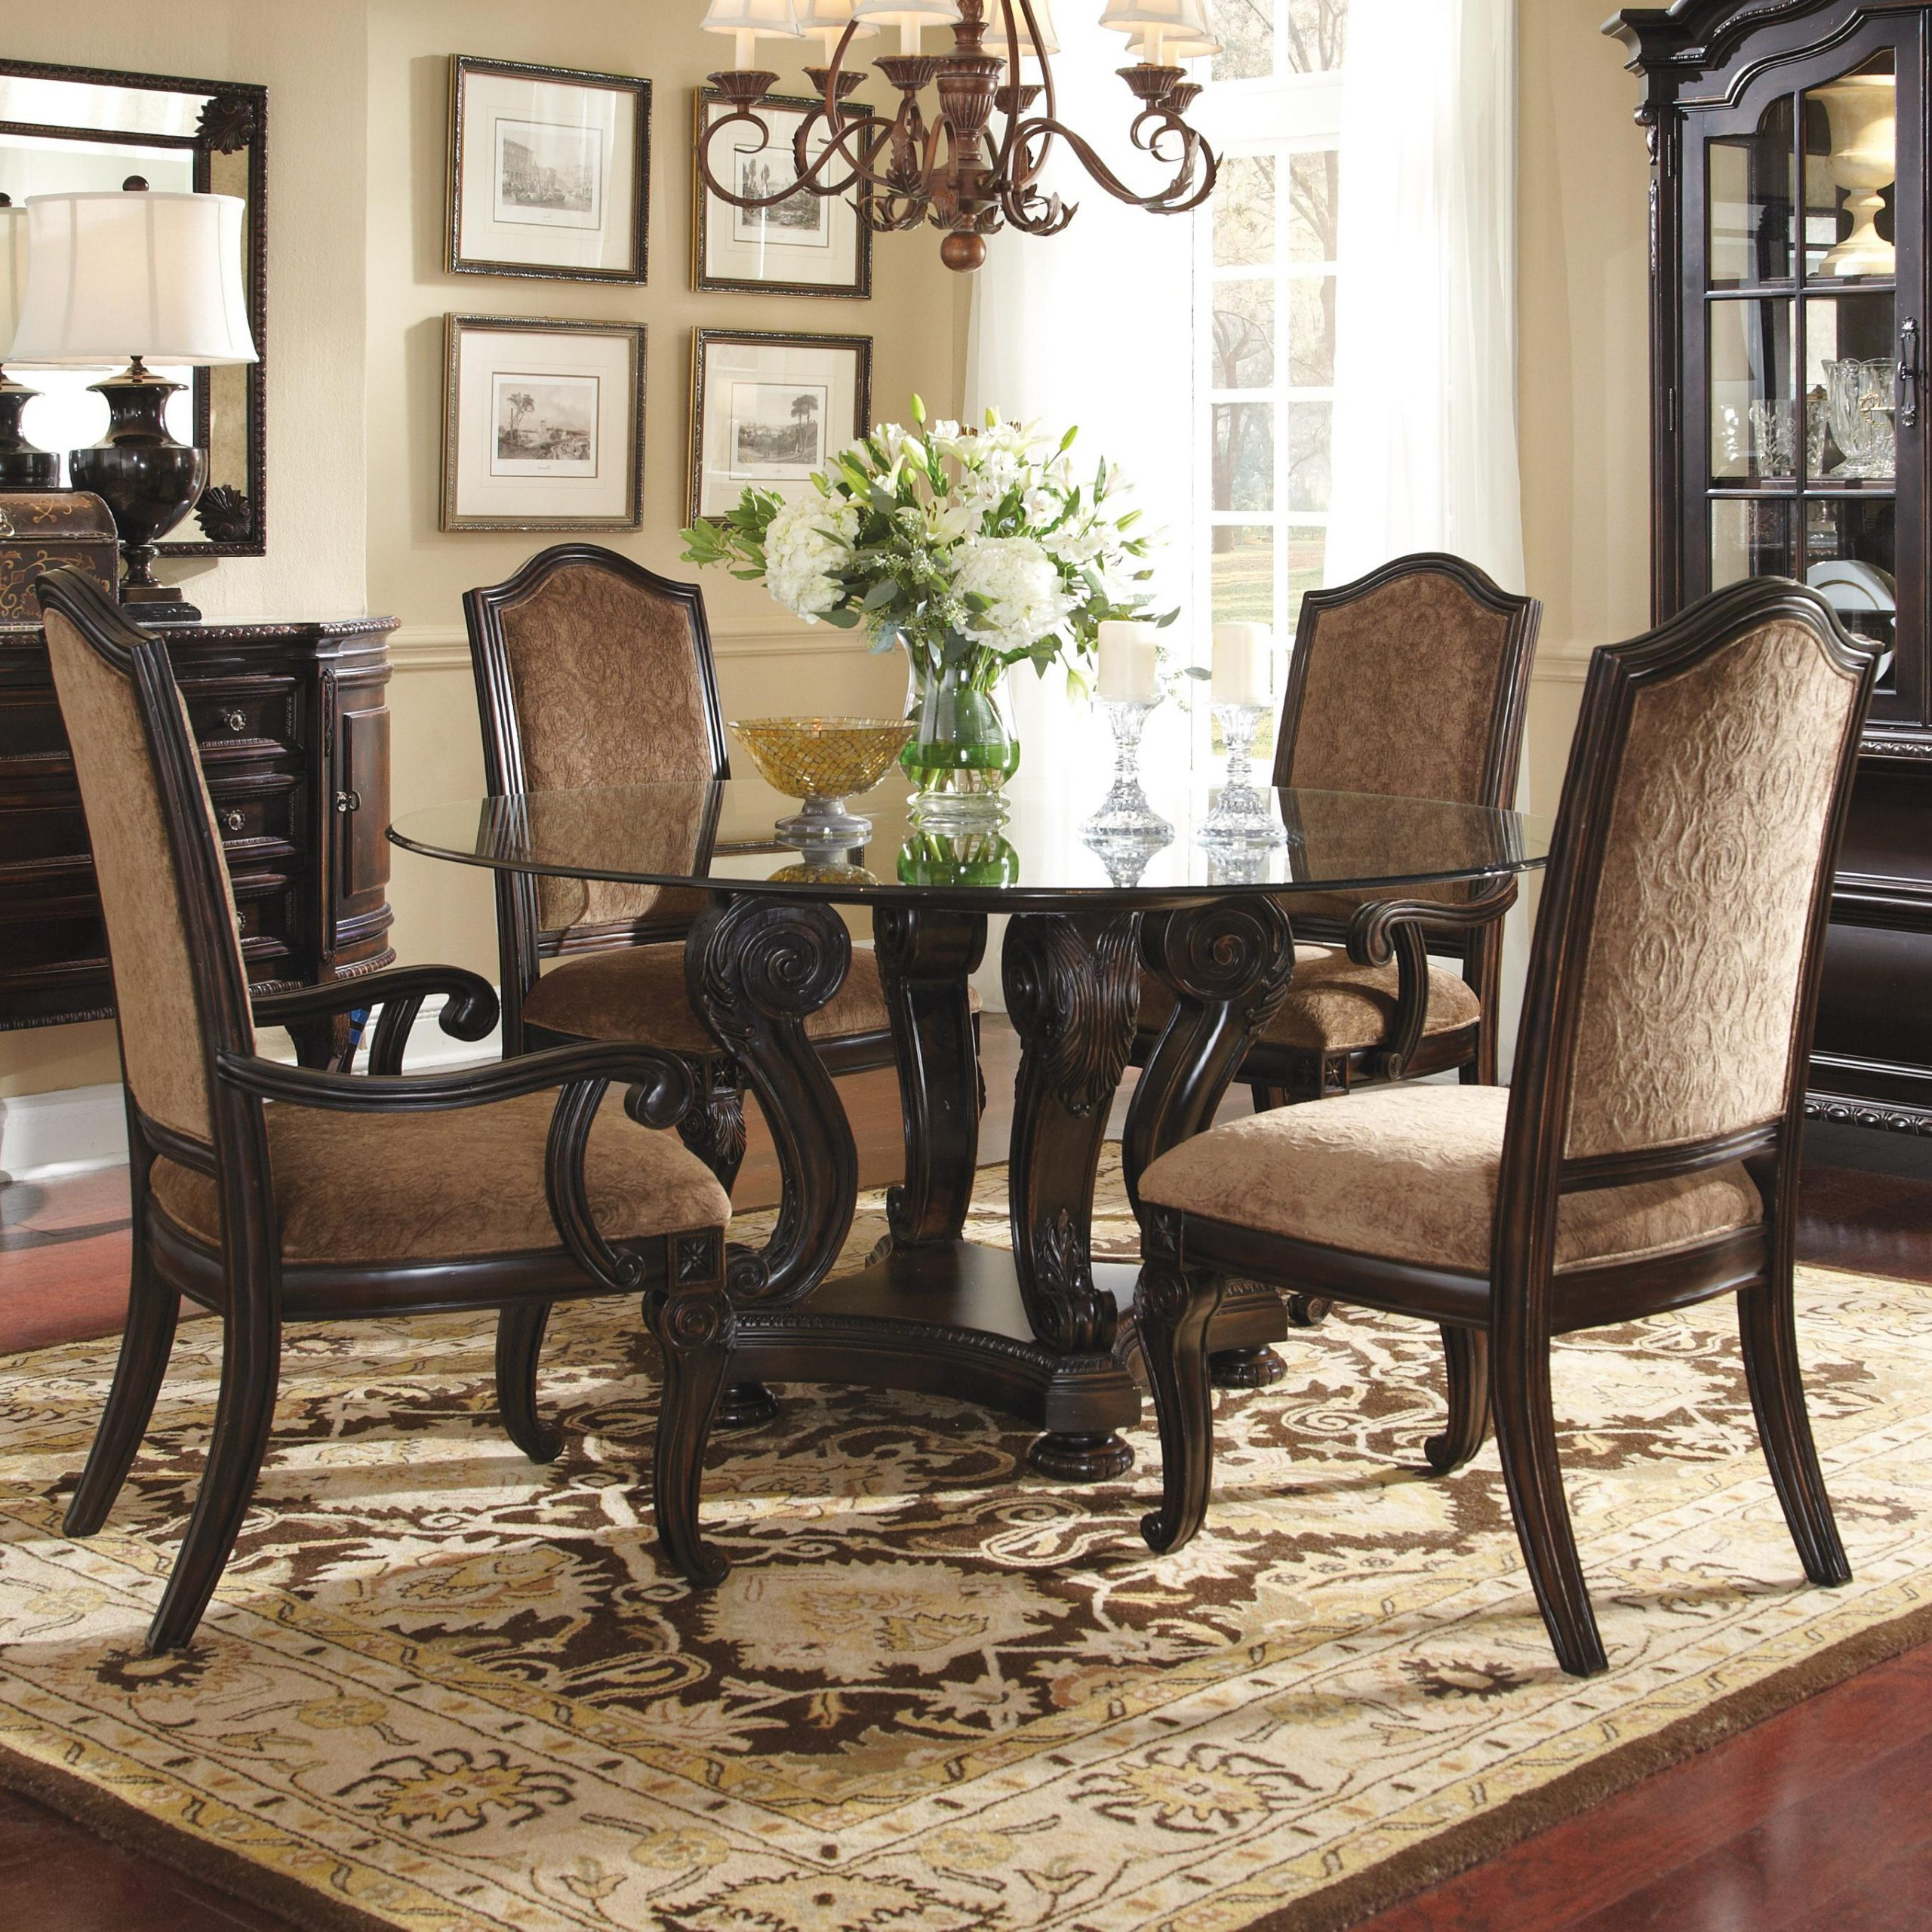 2019 Elegance Large Round Dining Tables throughout Round Dining Tables For 4 - Video And Photos